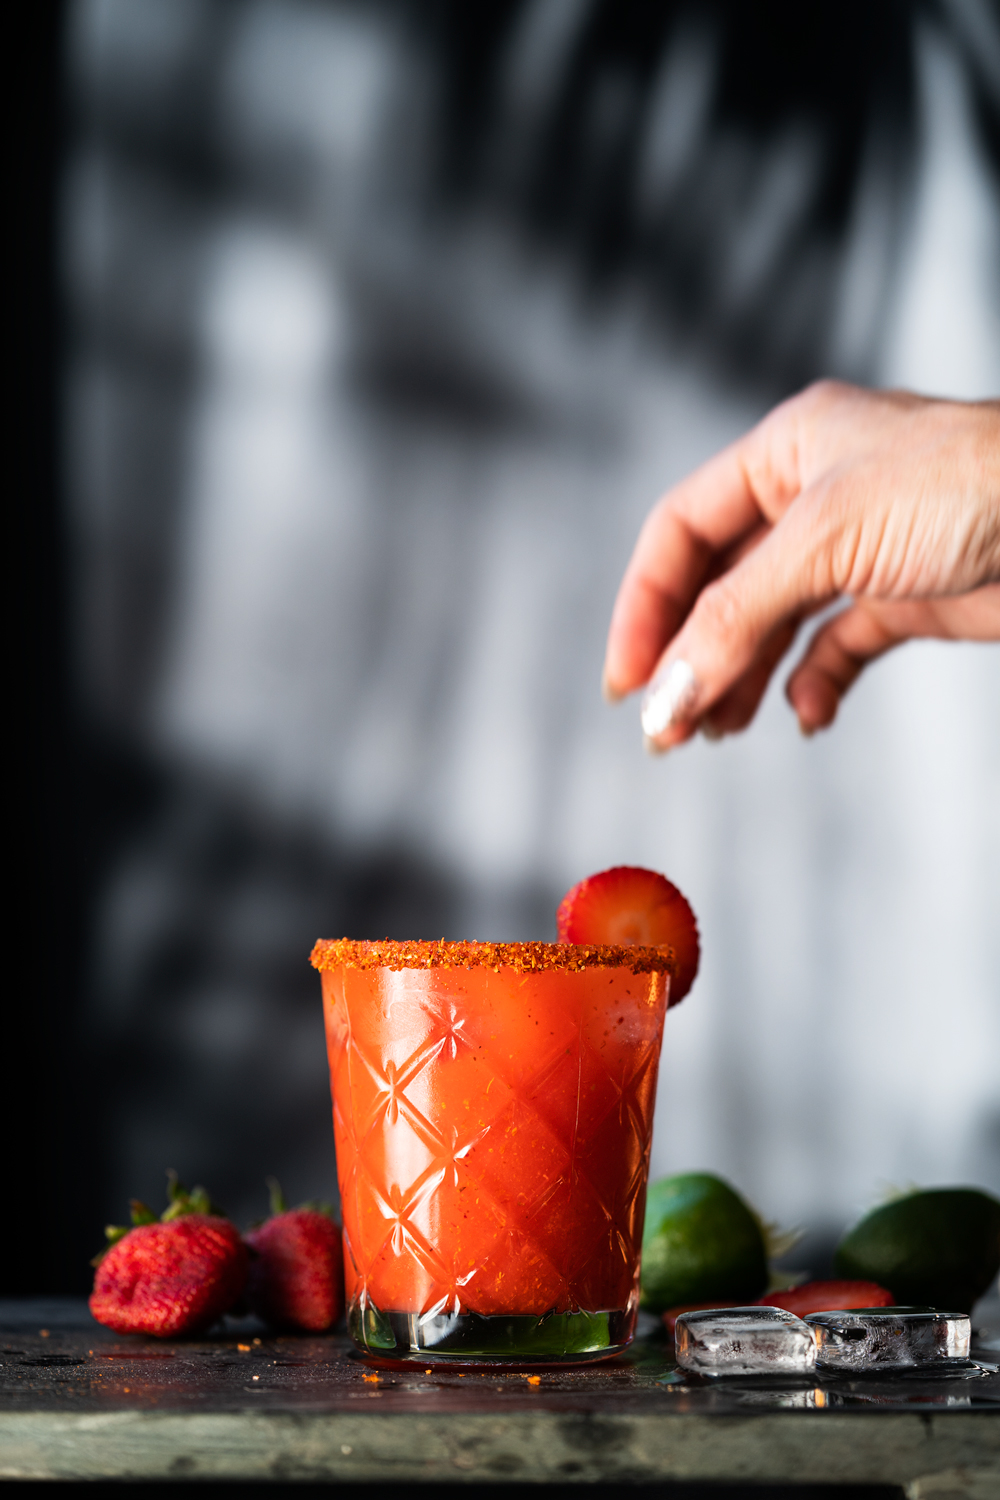 Placing a strawberry slice on the rim of a paleo strawberry margarita